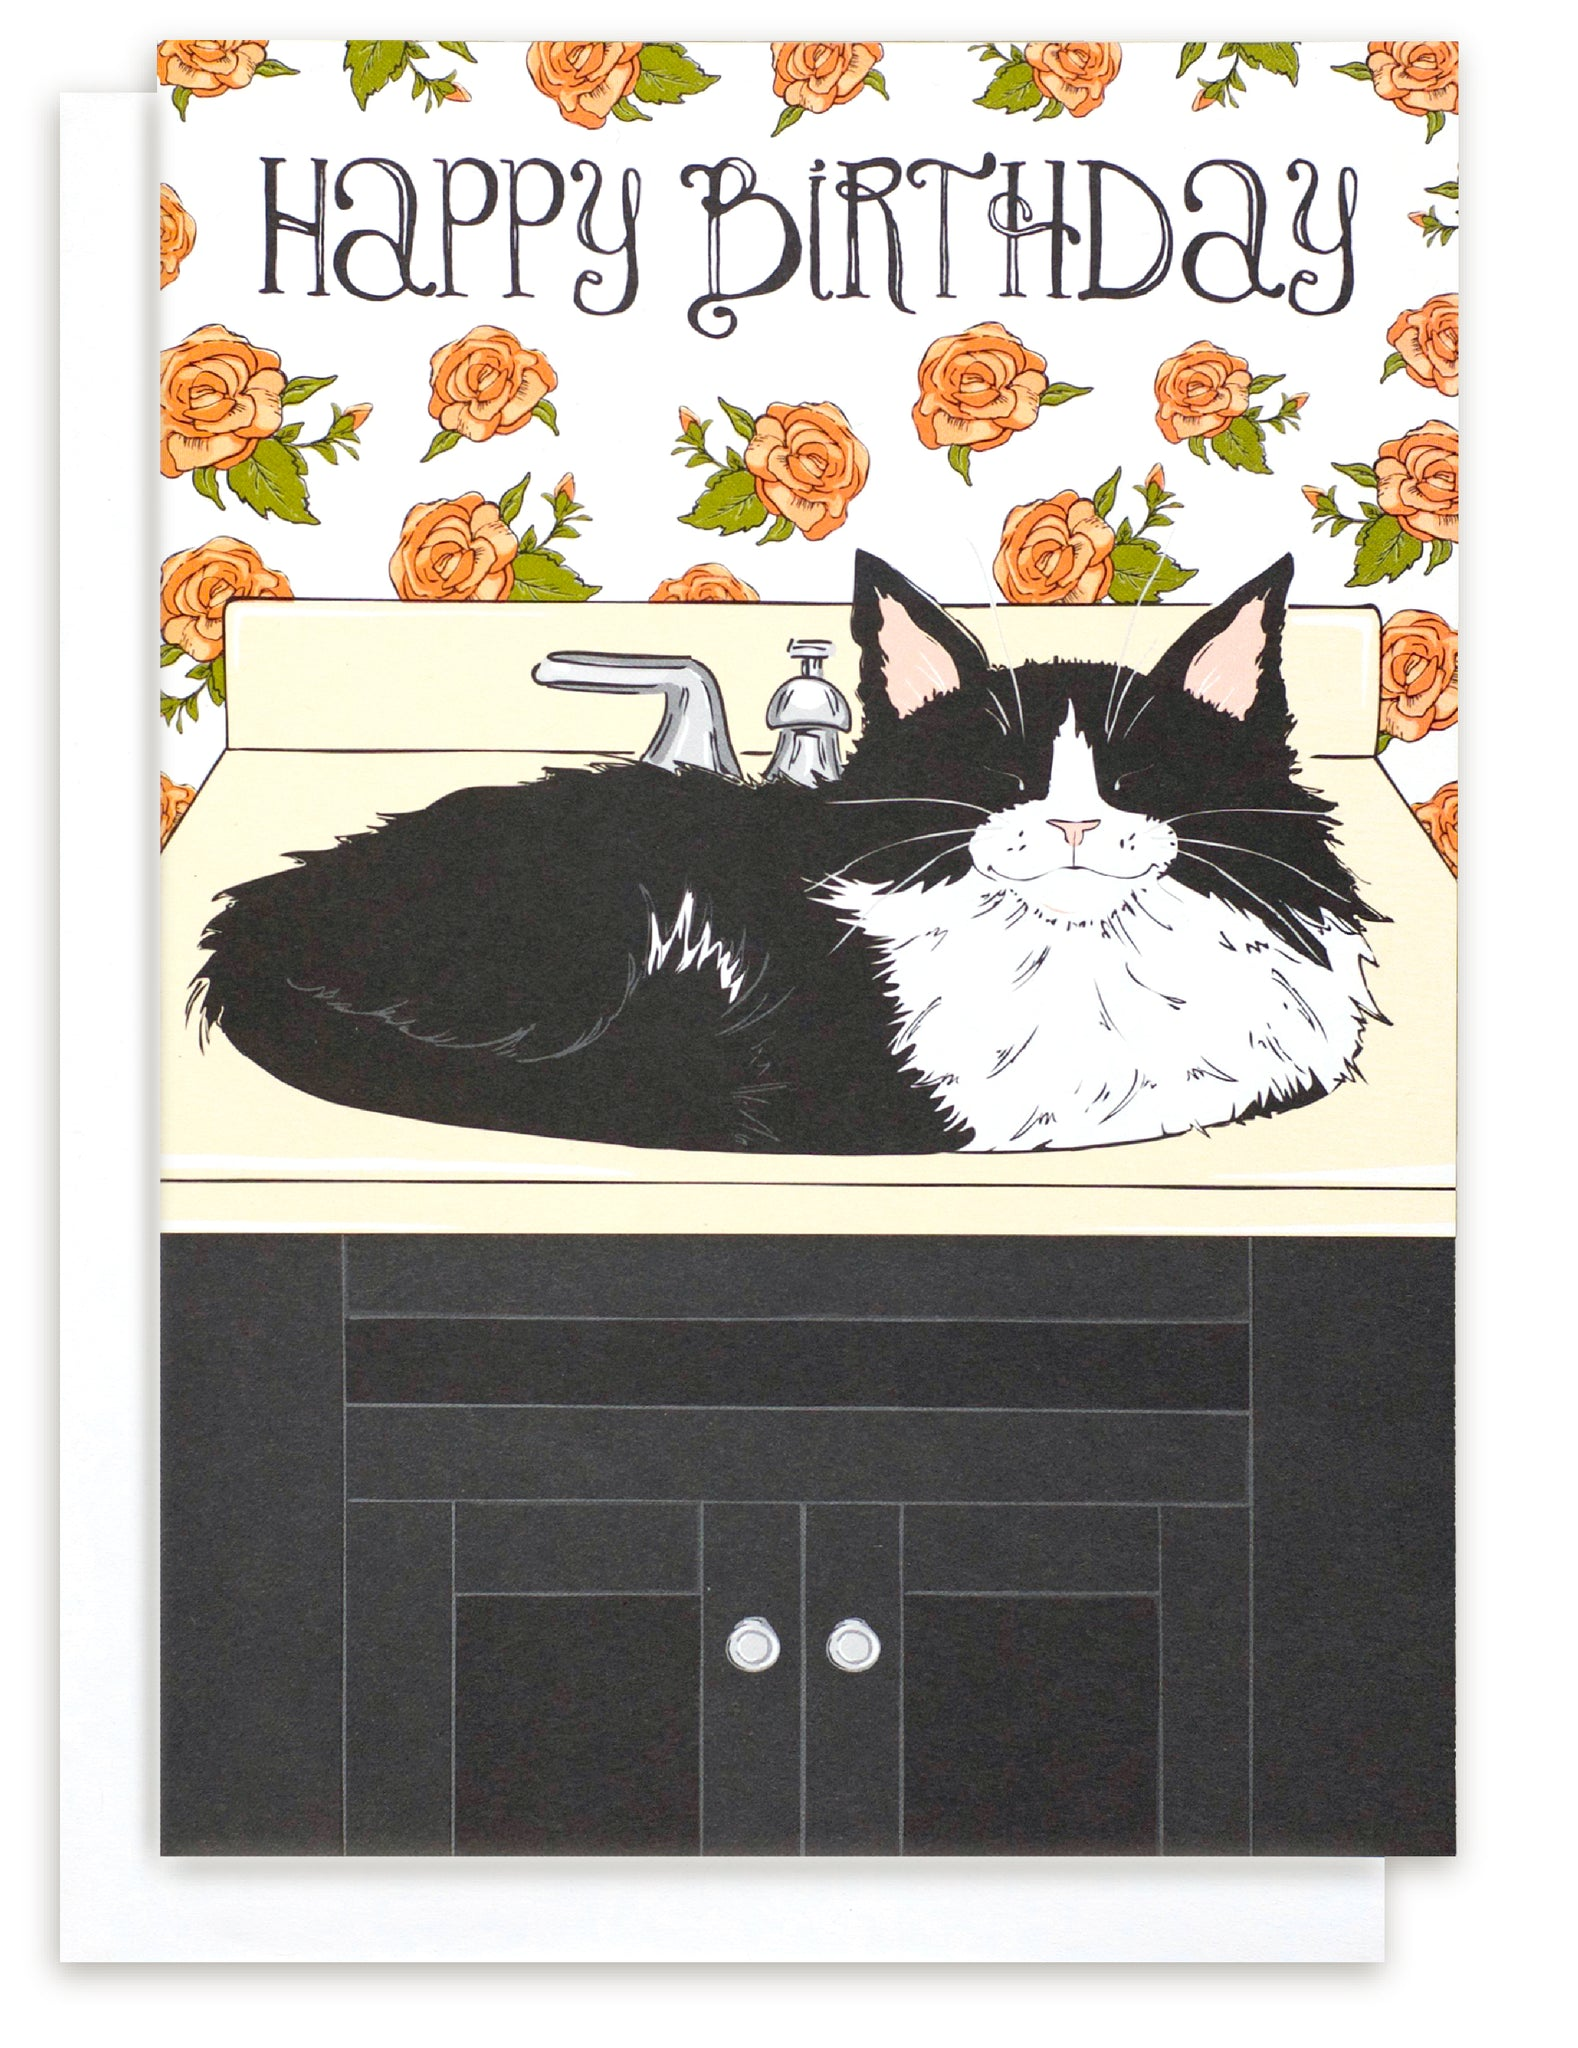 tuxedo-cat-sink-funny-birthday-card